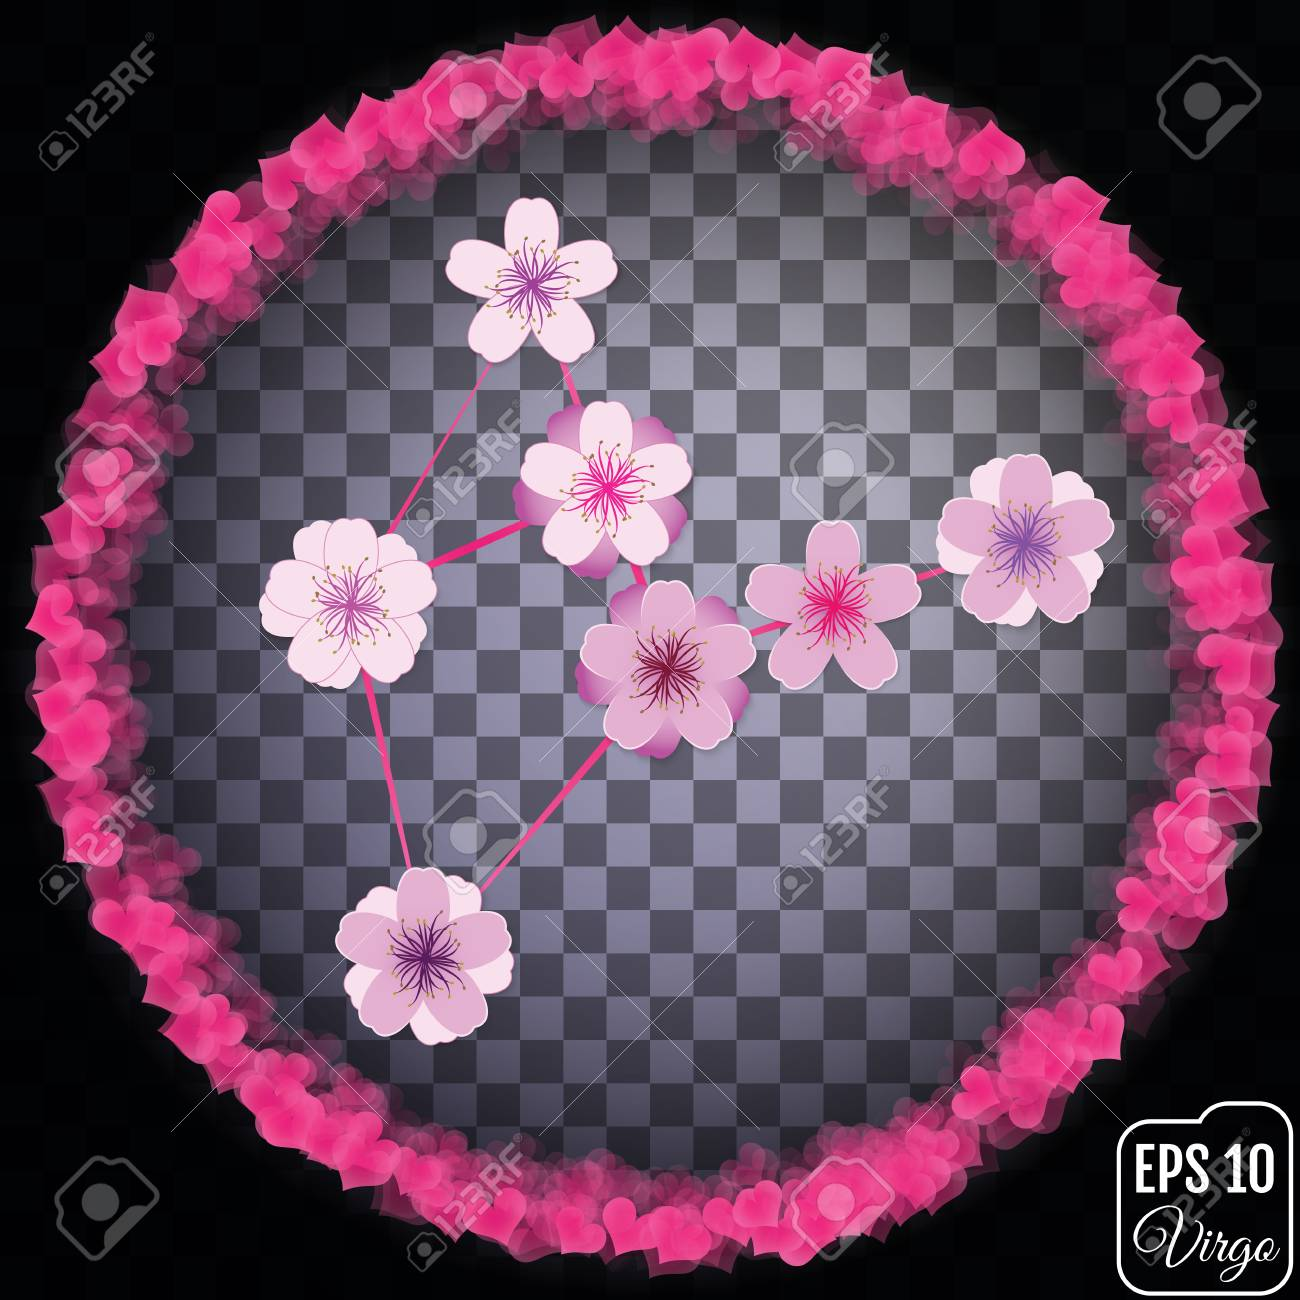 Zodiac Sign Virgo Sakura Concept Flowers Concept Constellation Royalty Free Cliparts Vectors And Stock Illustration Image 69948555